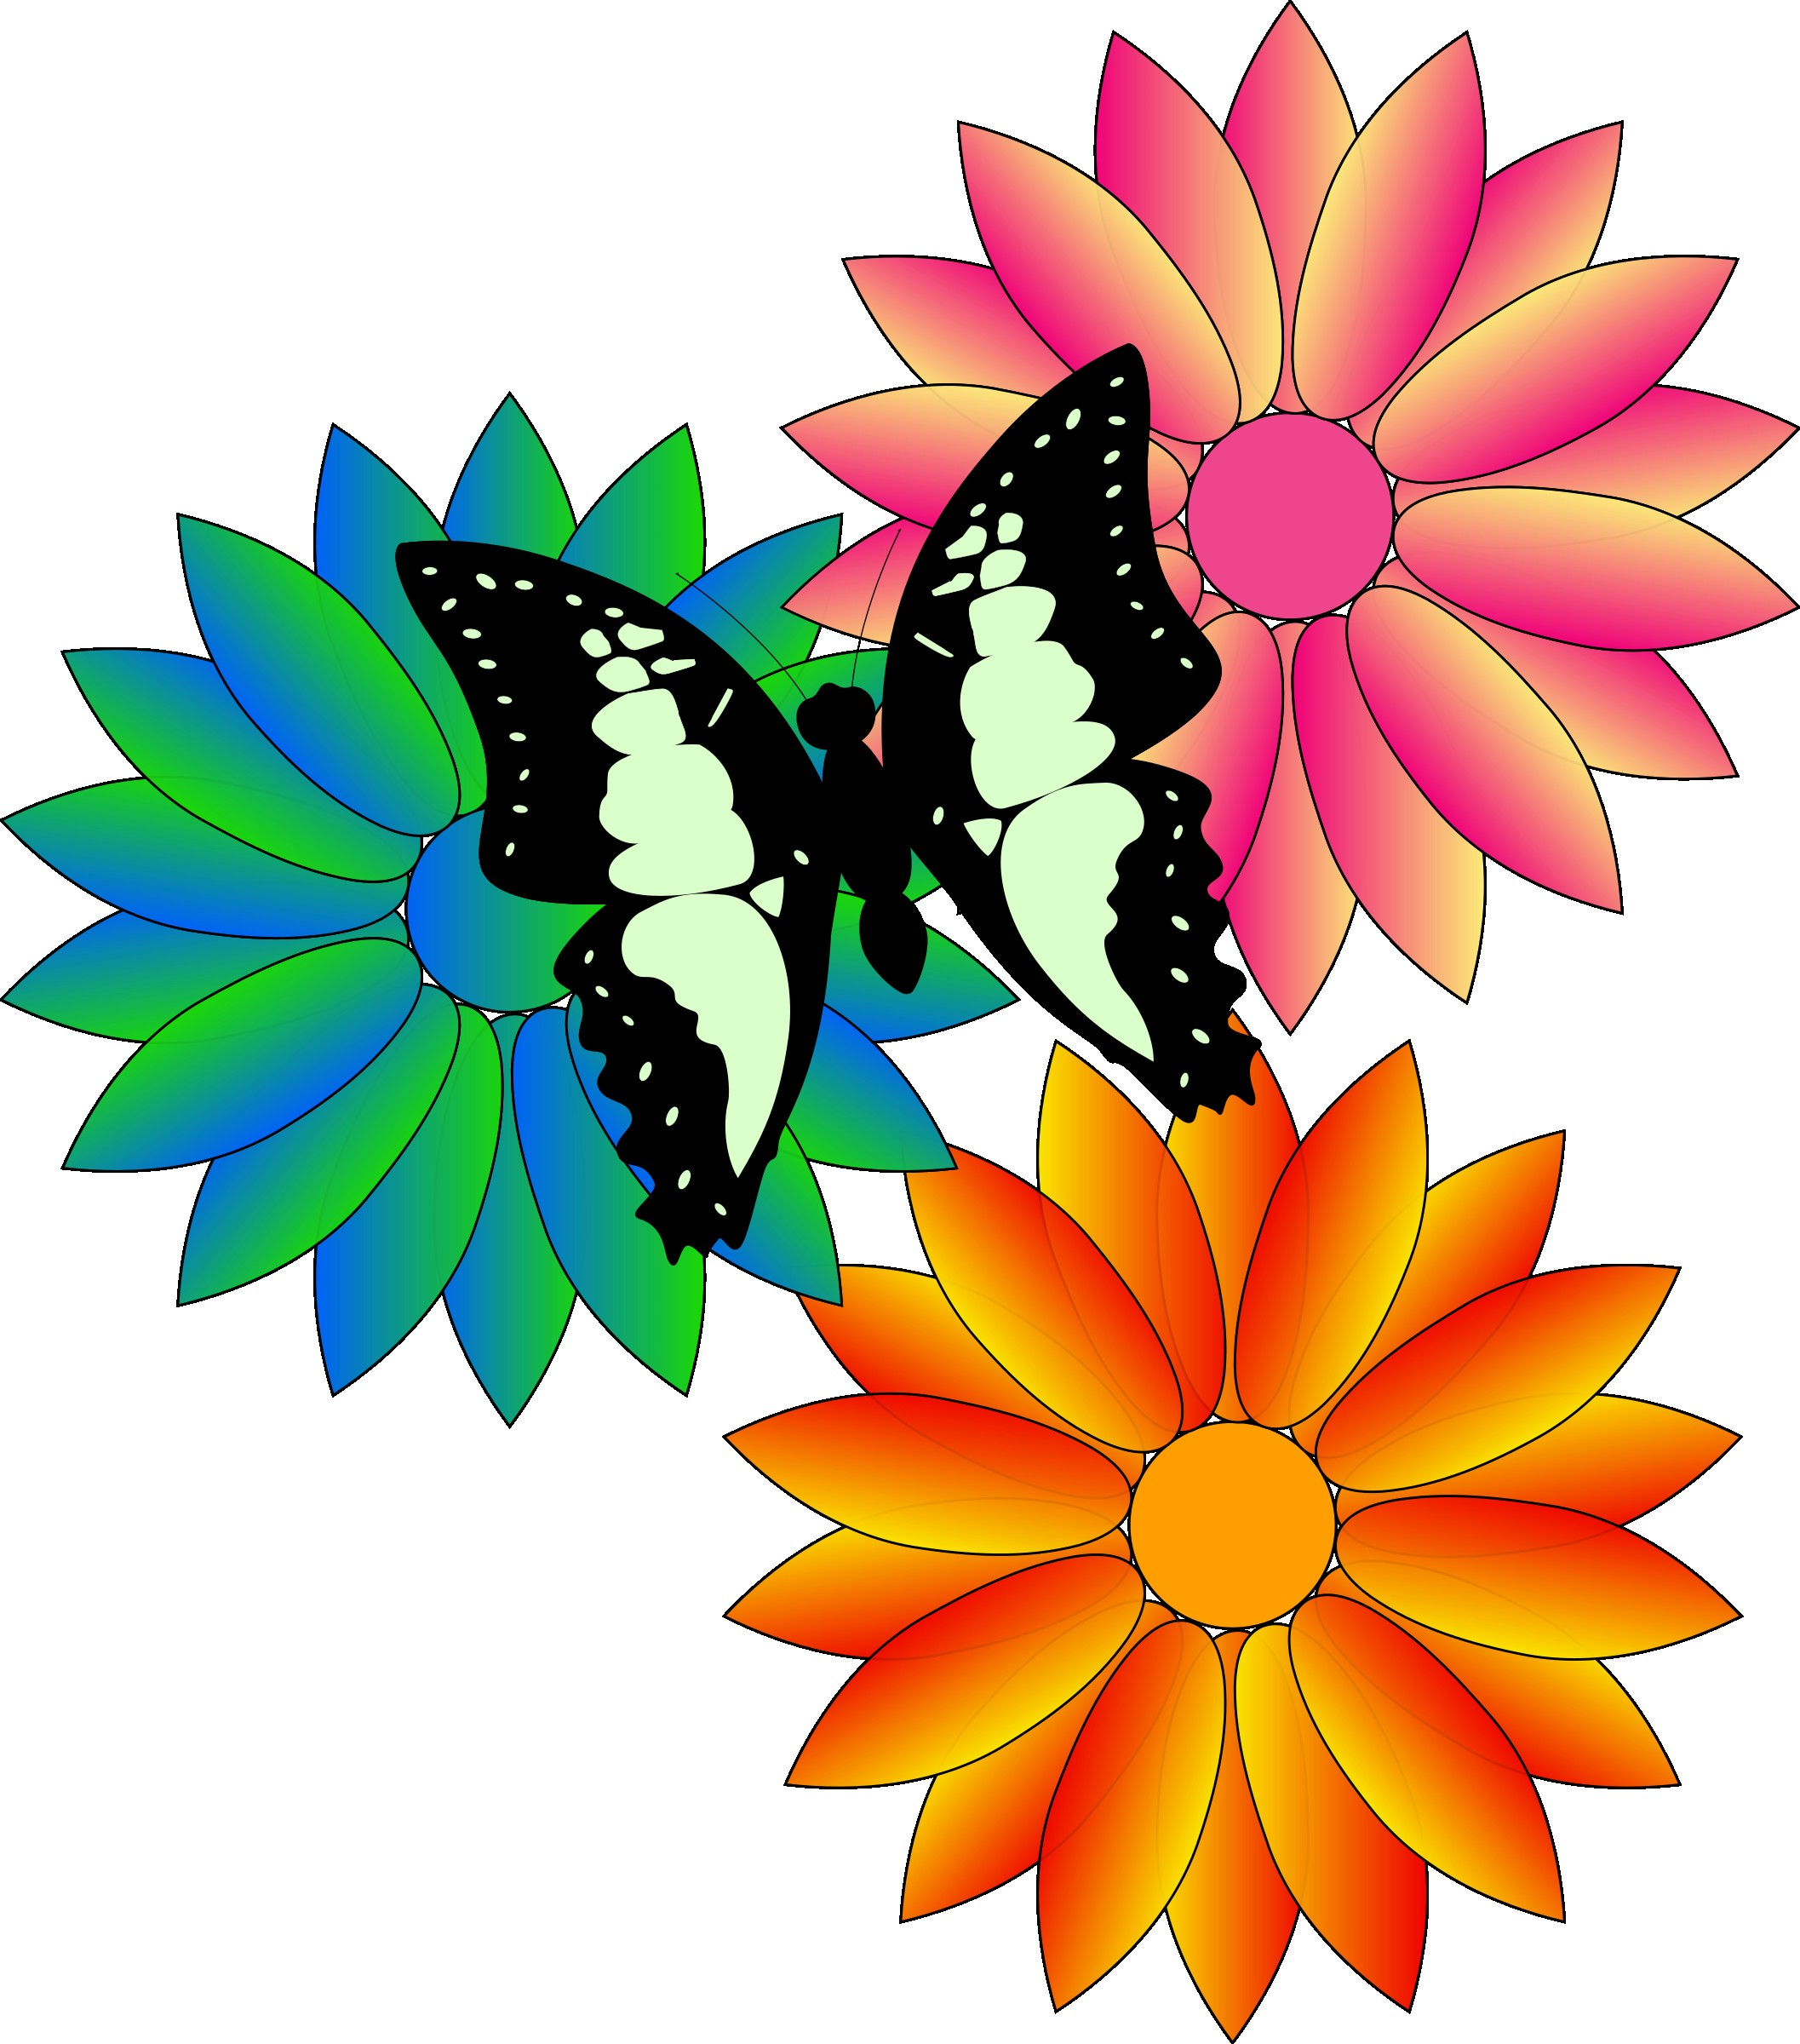 May animated clipart image royalty free download Within Clipart Animated Free Clip Art May Flowers 8 | Clip Art image royalty free download